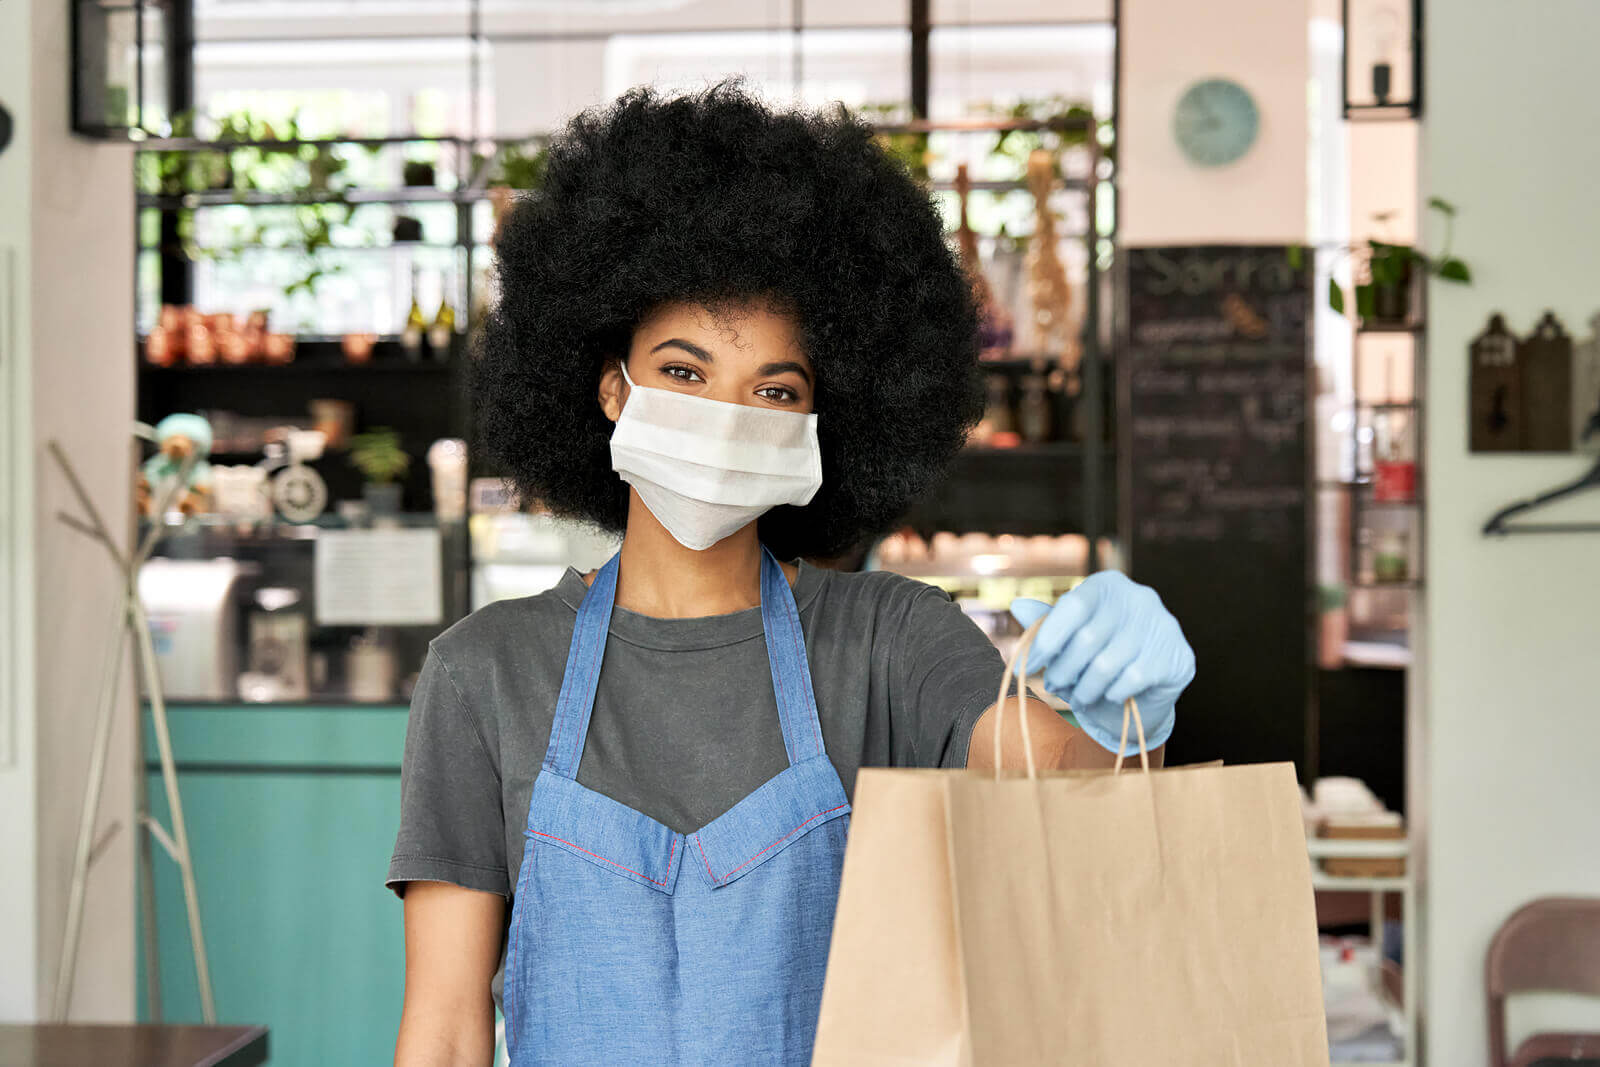 A Black female cafe worker, wearing an apron and face mask, holding a bag of food